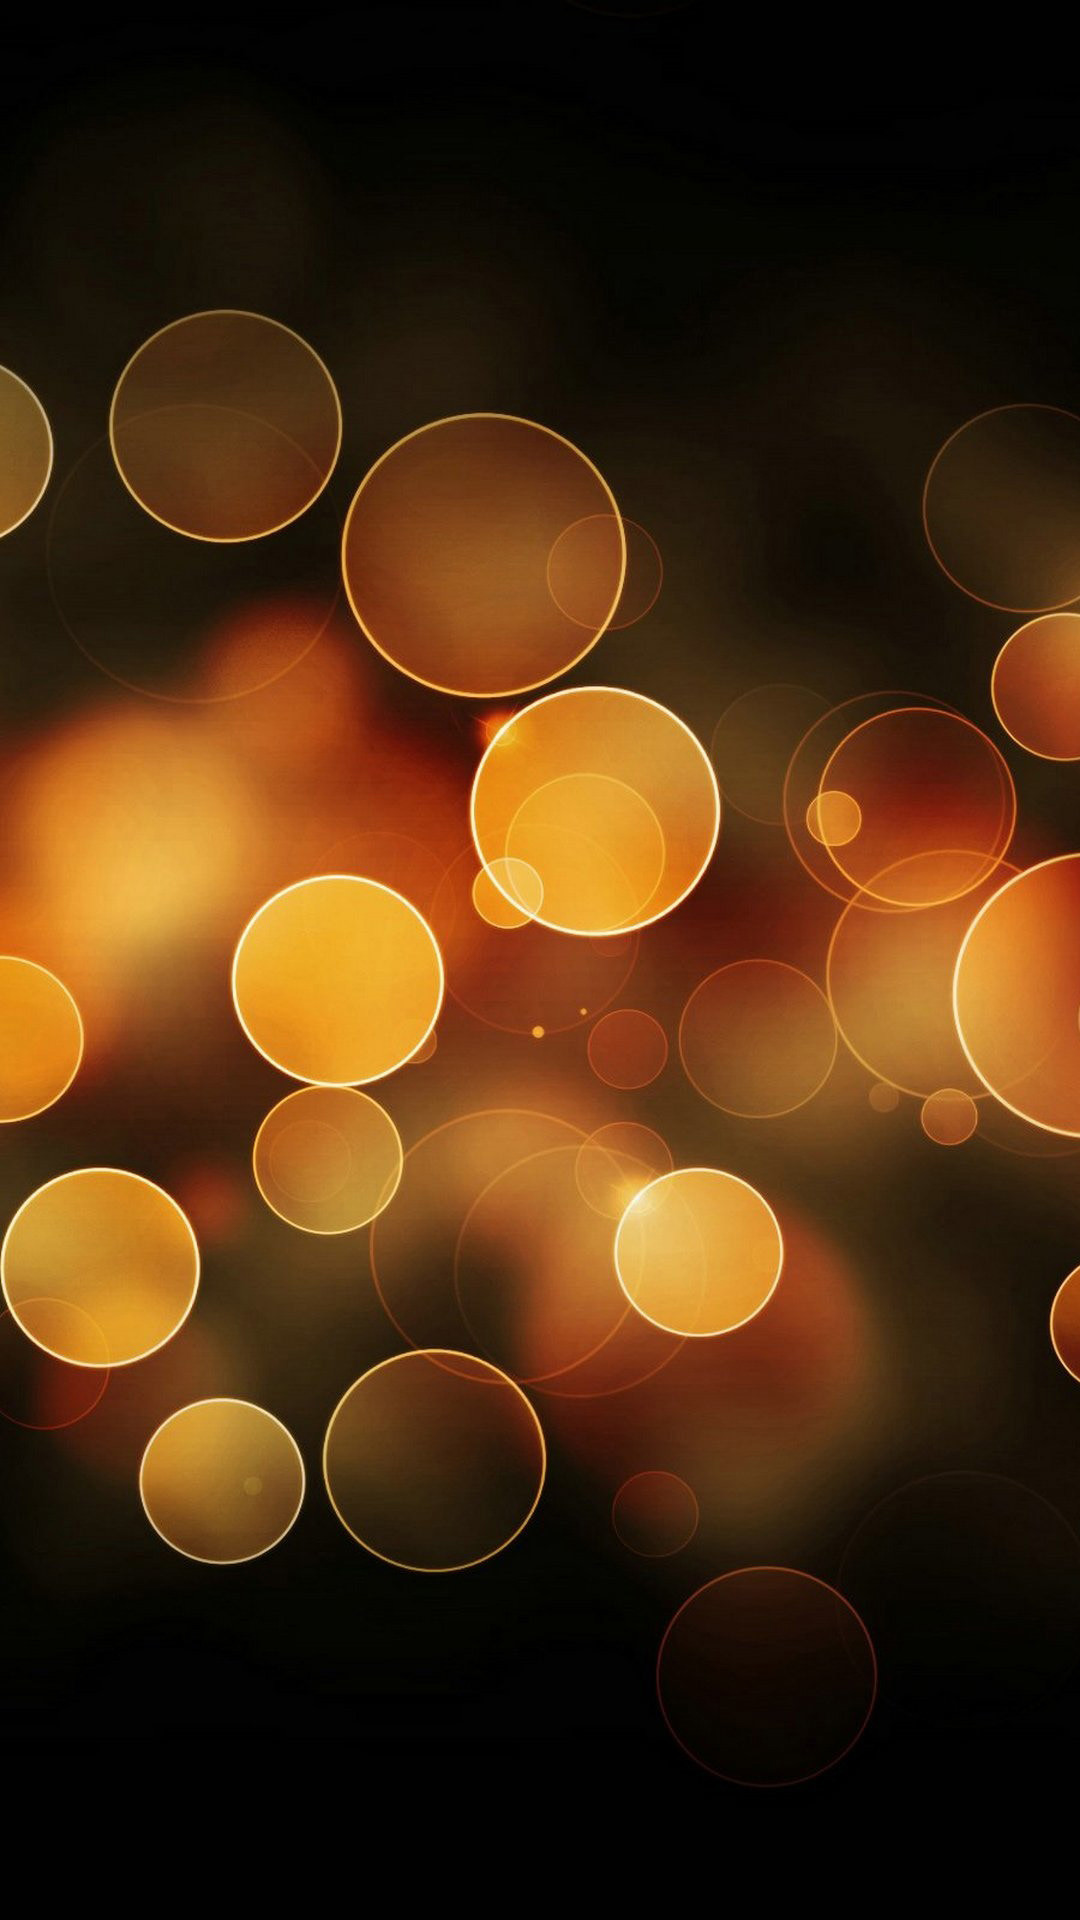 1080x1920 Gold Bokeh Lights Android Wallpaper ...